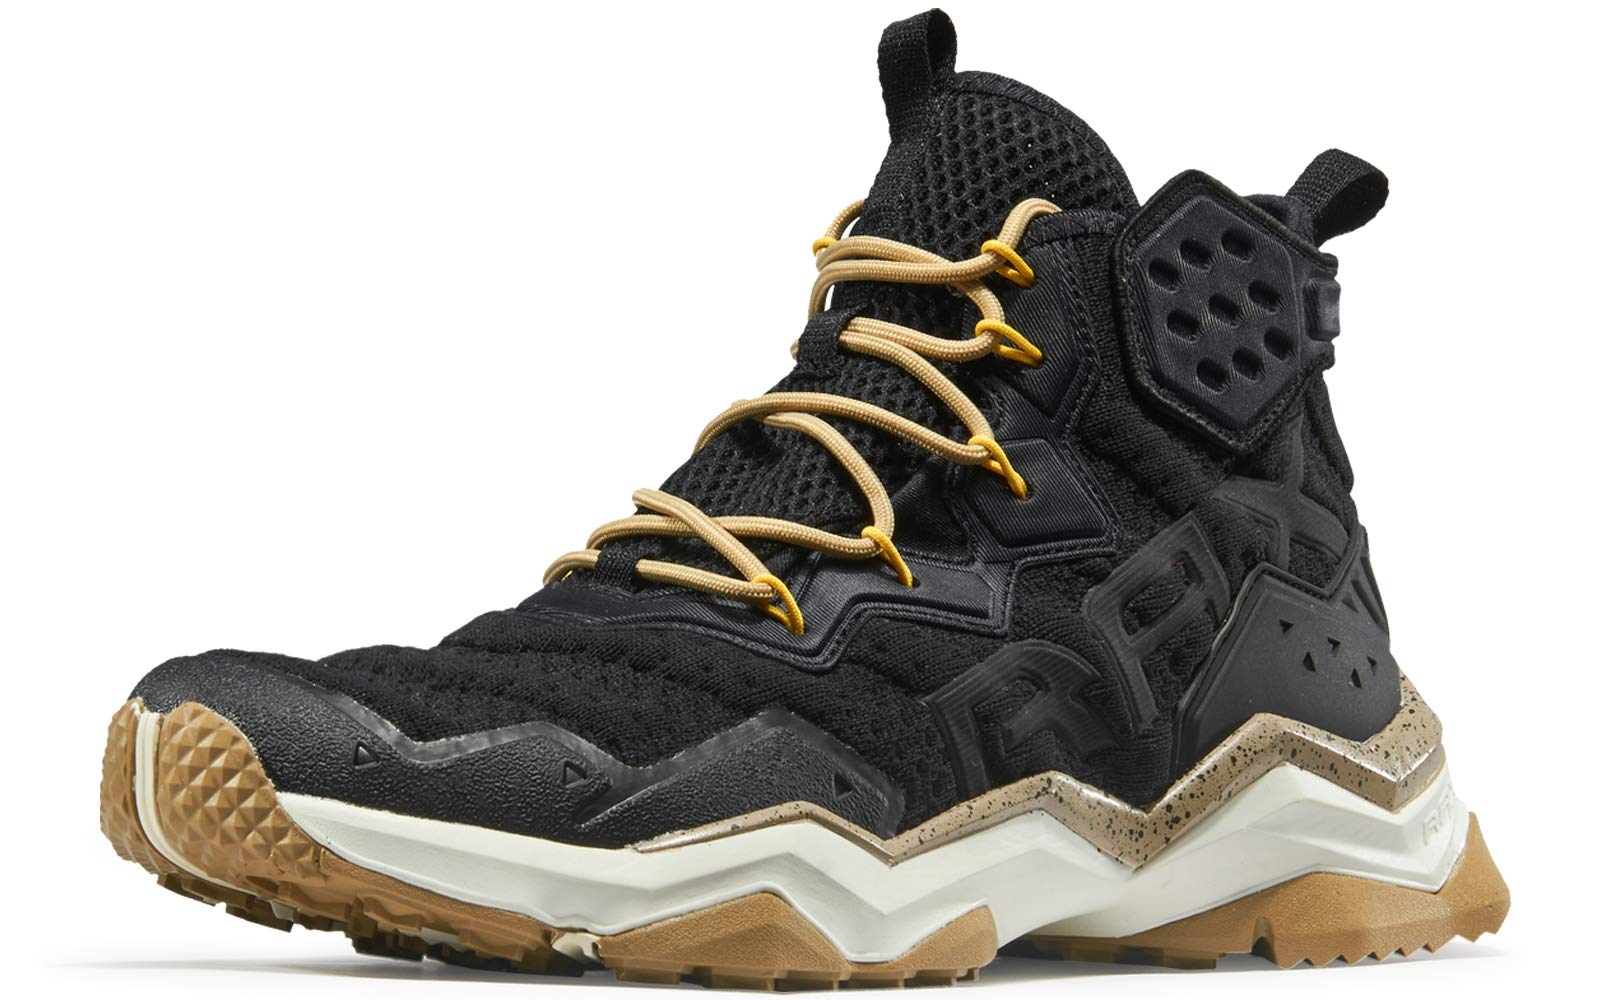 RAX Men's Wolf Outdoor Breathable Hiking Boot Camping Backpacking Shoes Lightweight Sneaker Black by RAX